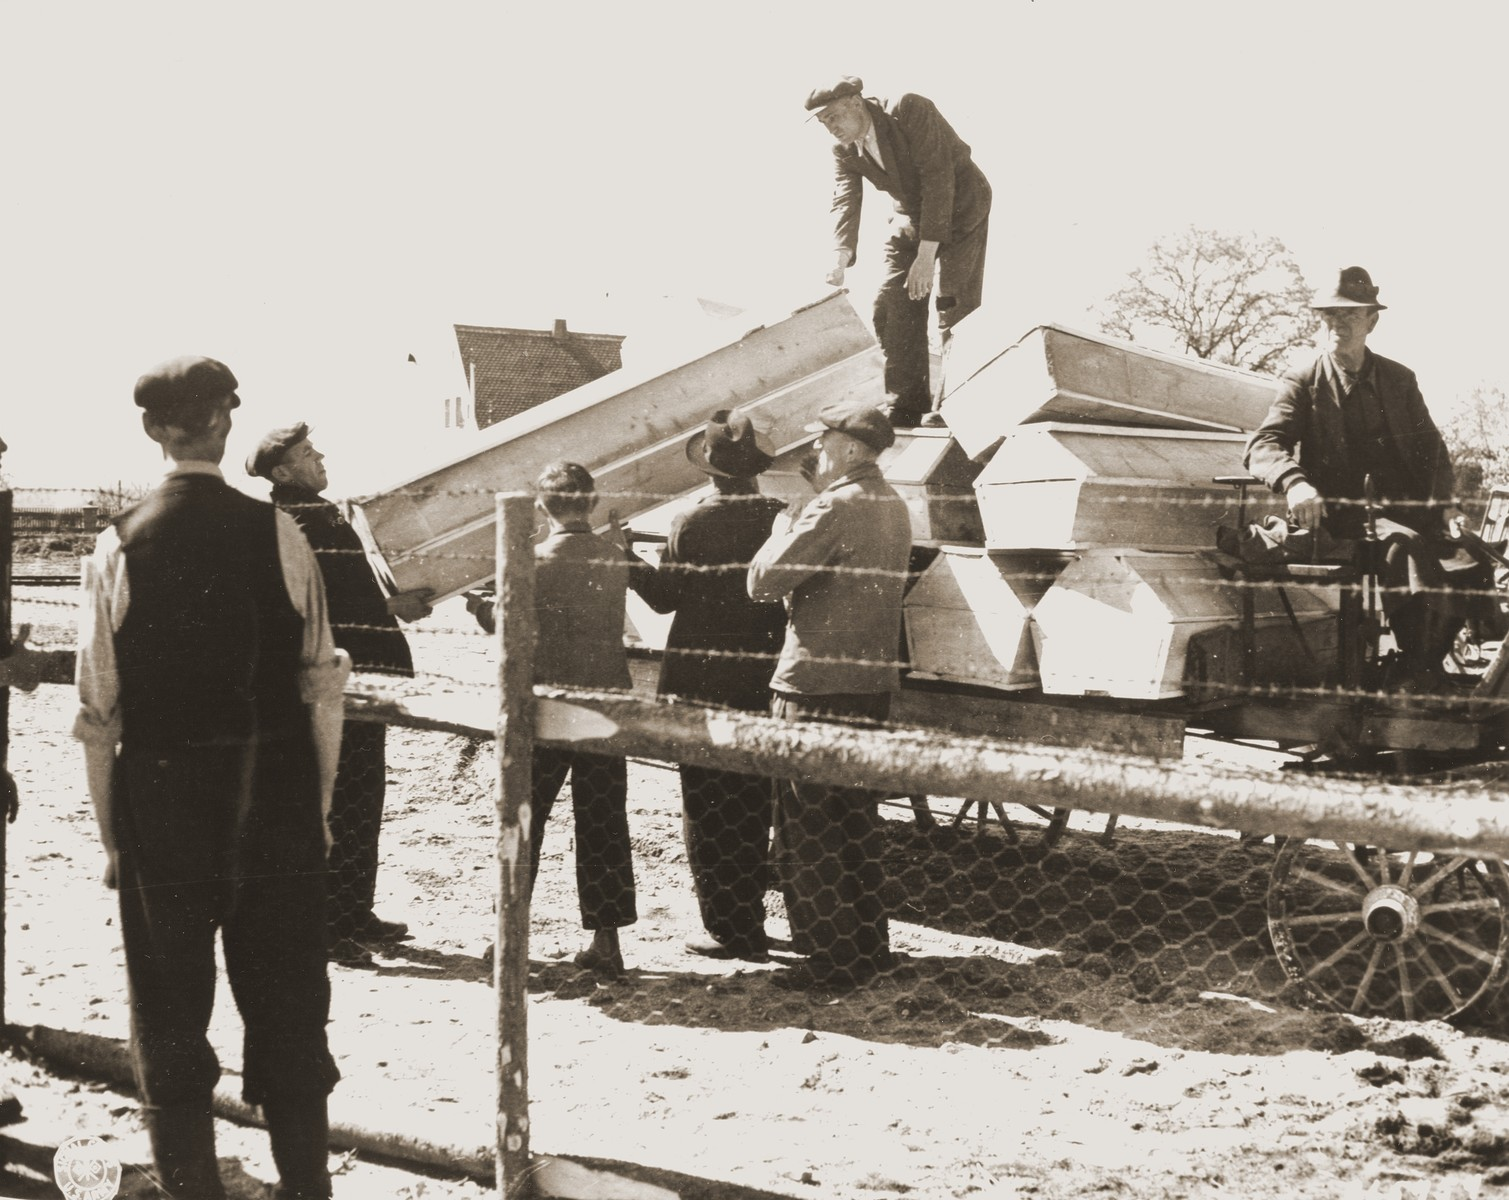 German civilians from Schwarzenfeld load a wagon with coffins to be transported to a mass grave from which the bodies of 140 Hungarian, Polish, and Russian Jews were exhumed.    The victims died while on an evacuation transport from the Flossenbuerg concentration camp.